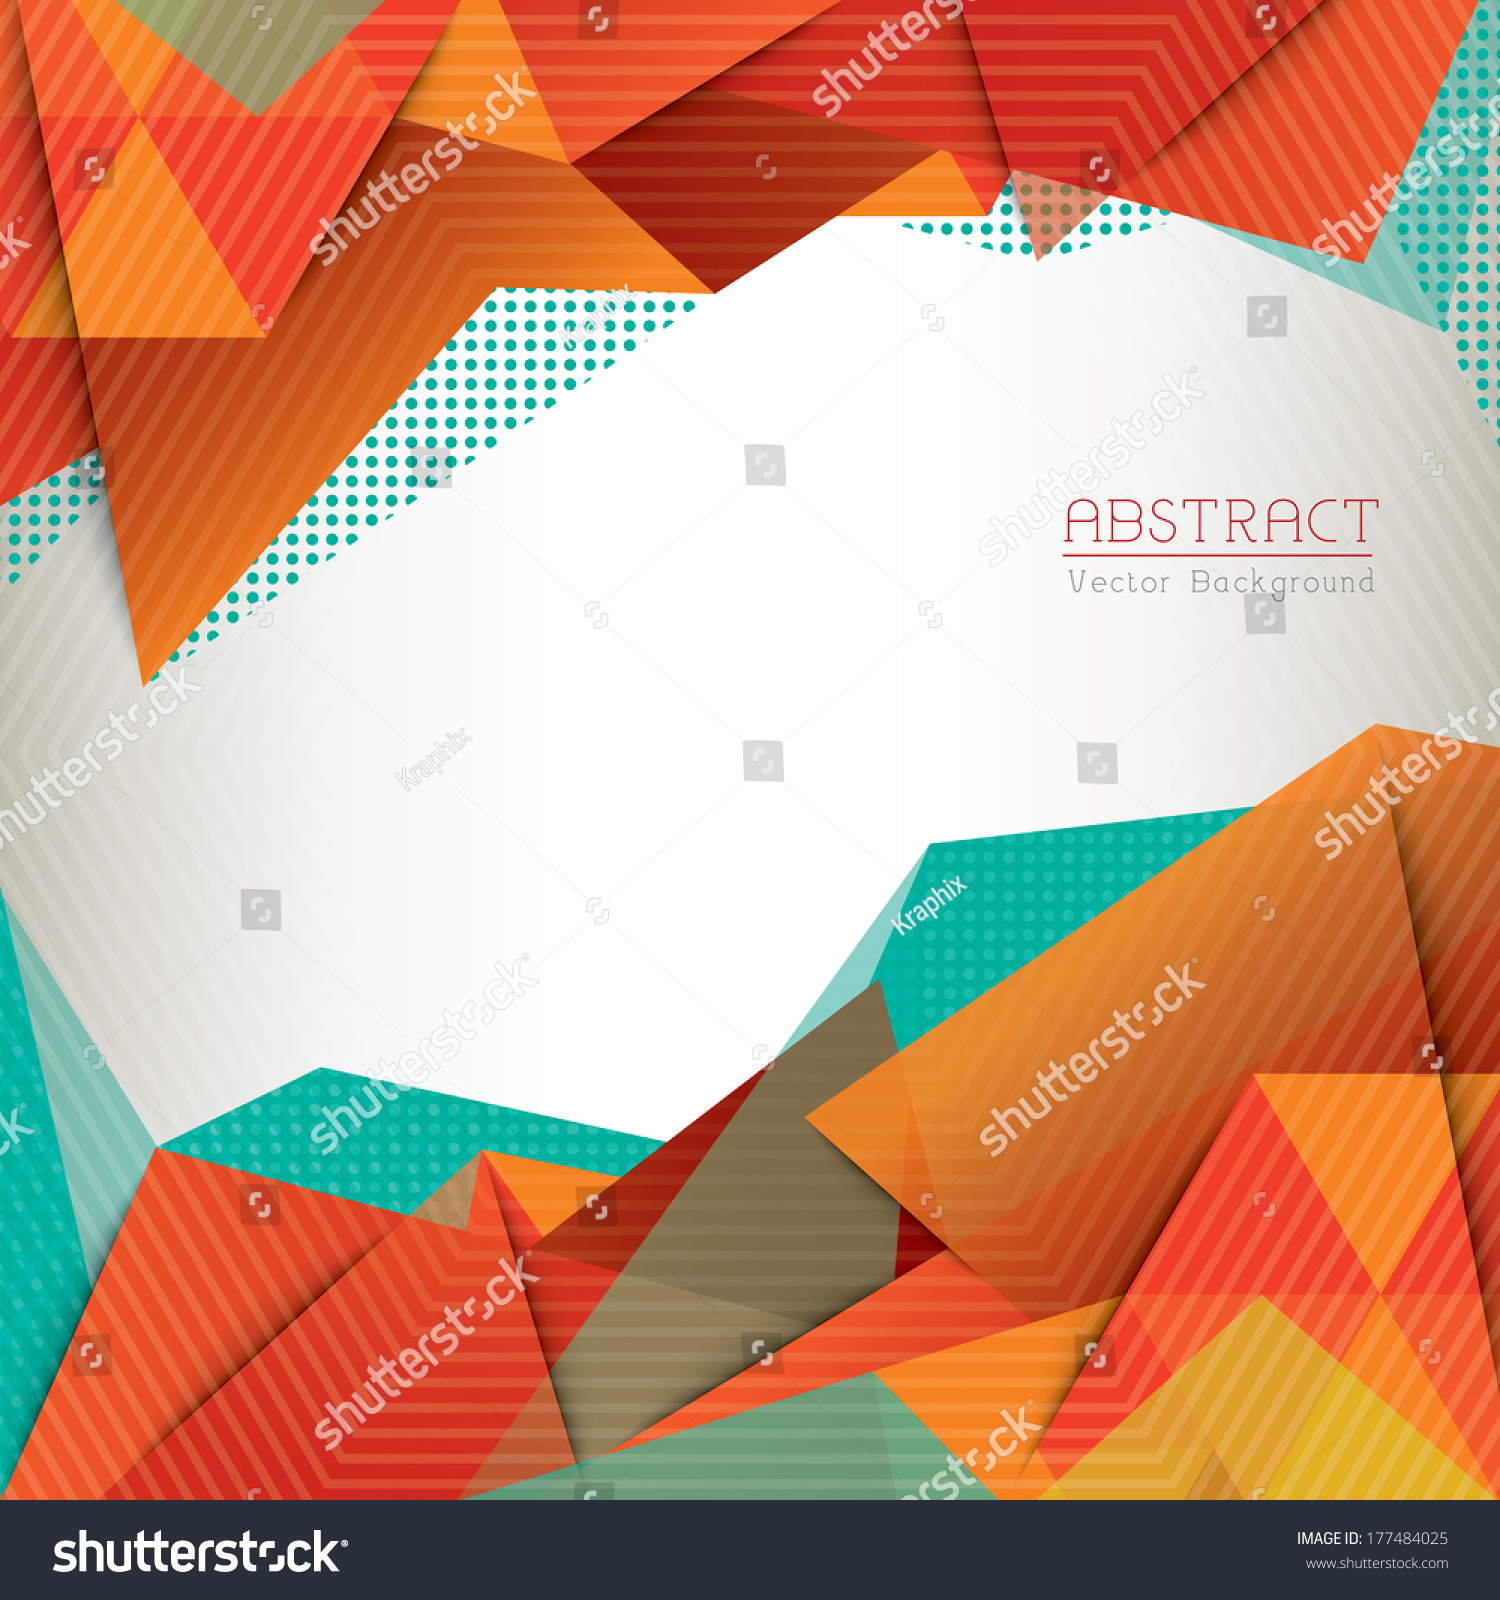 Abstract Book Cover Background : Abstract triangle shape background layout for web design